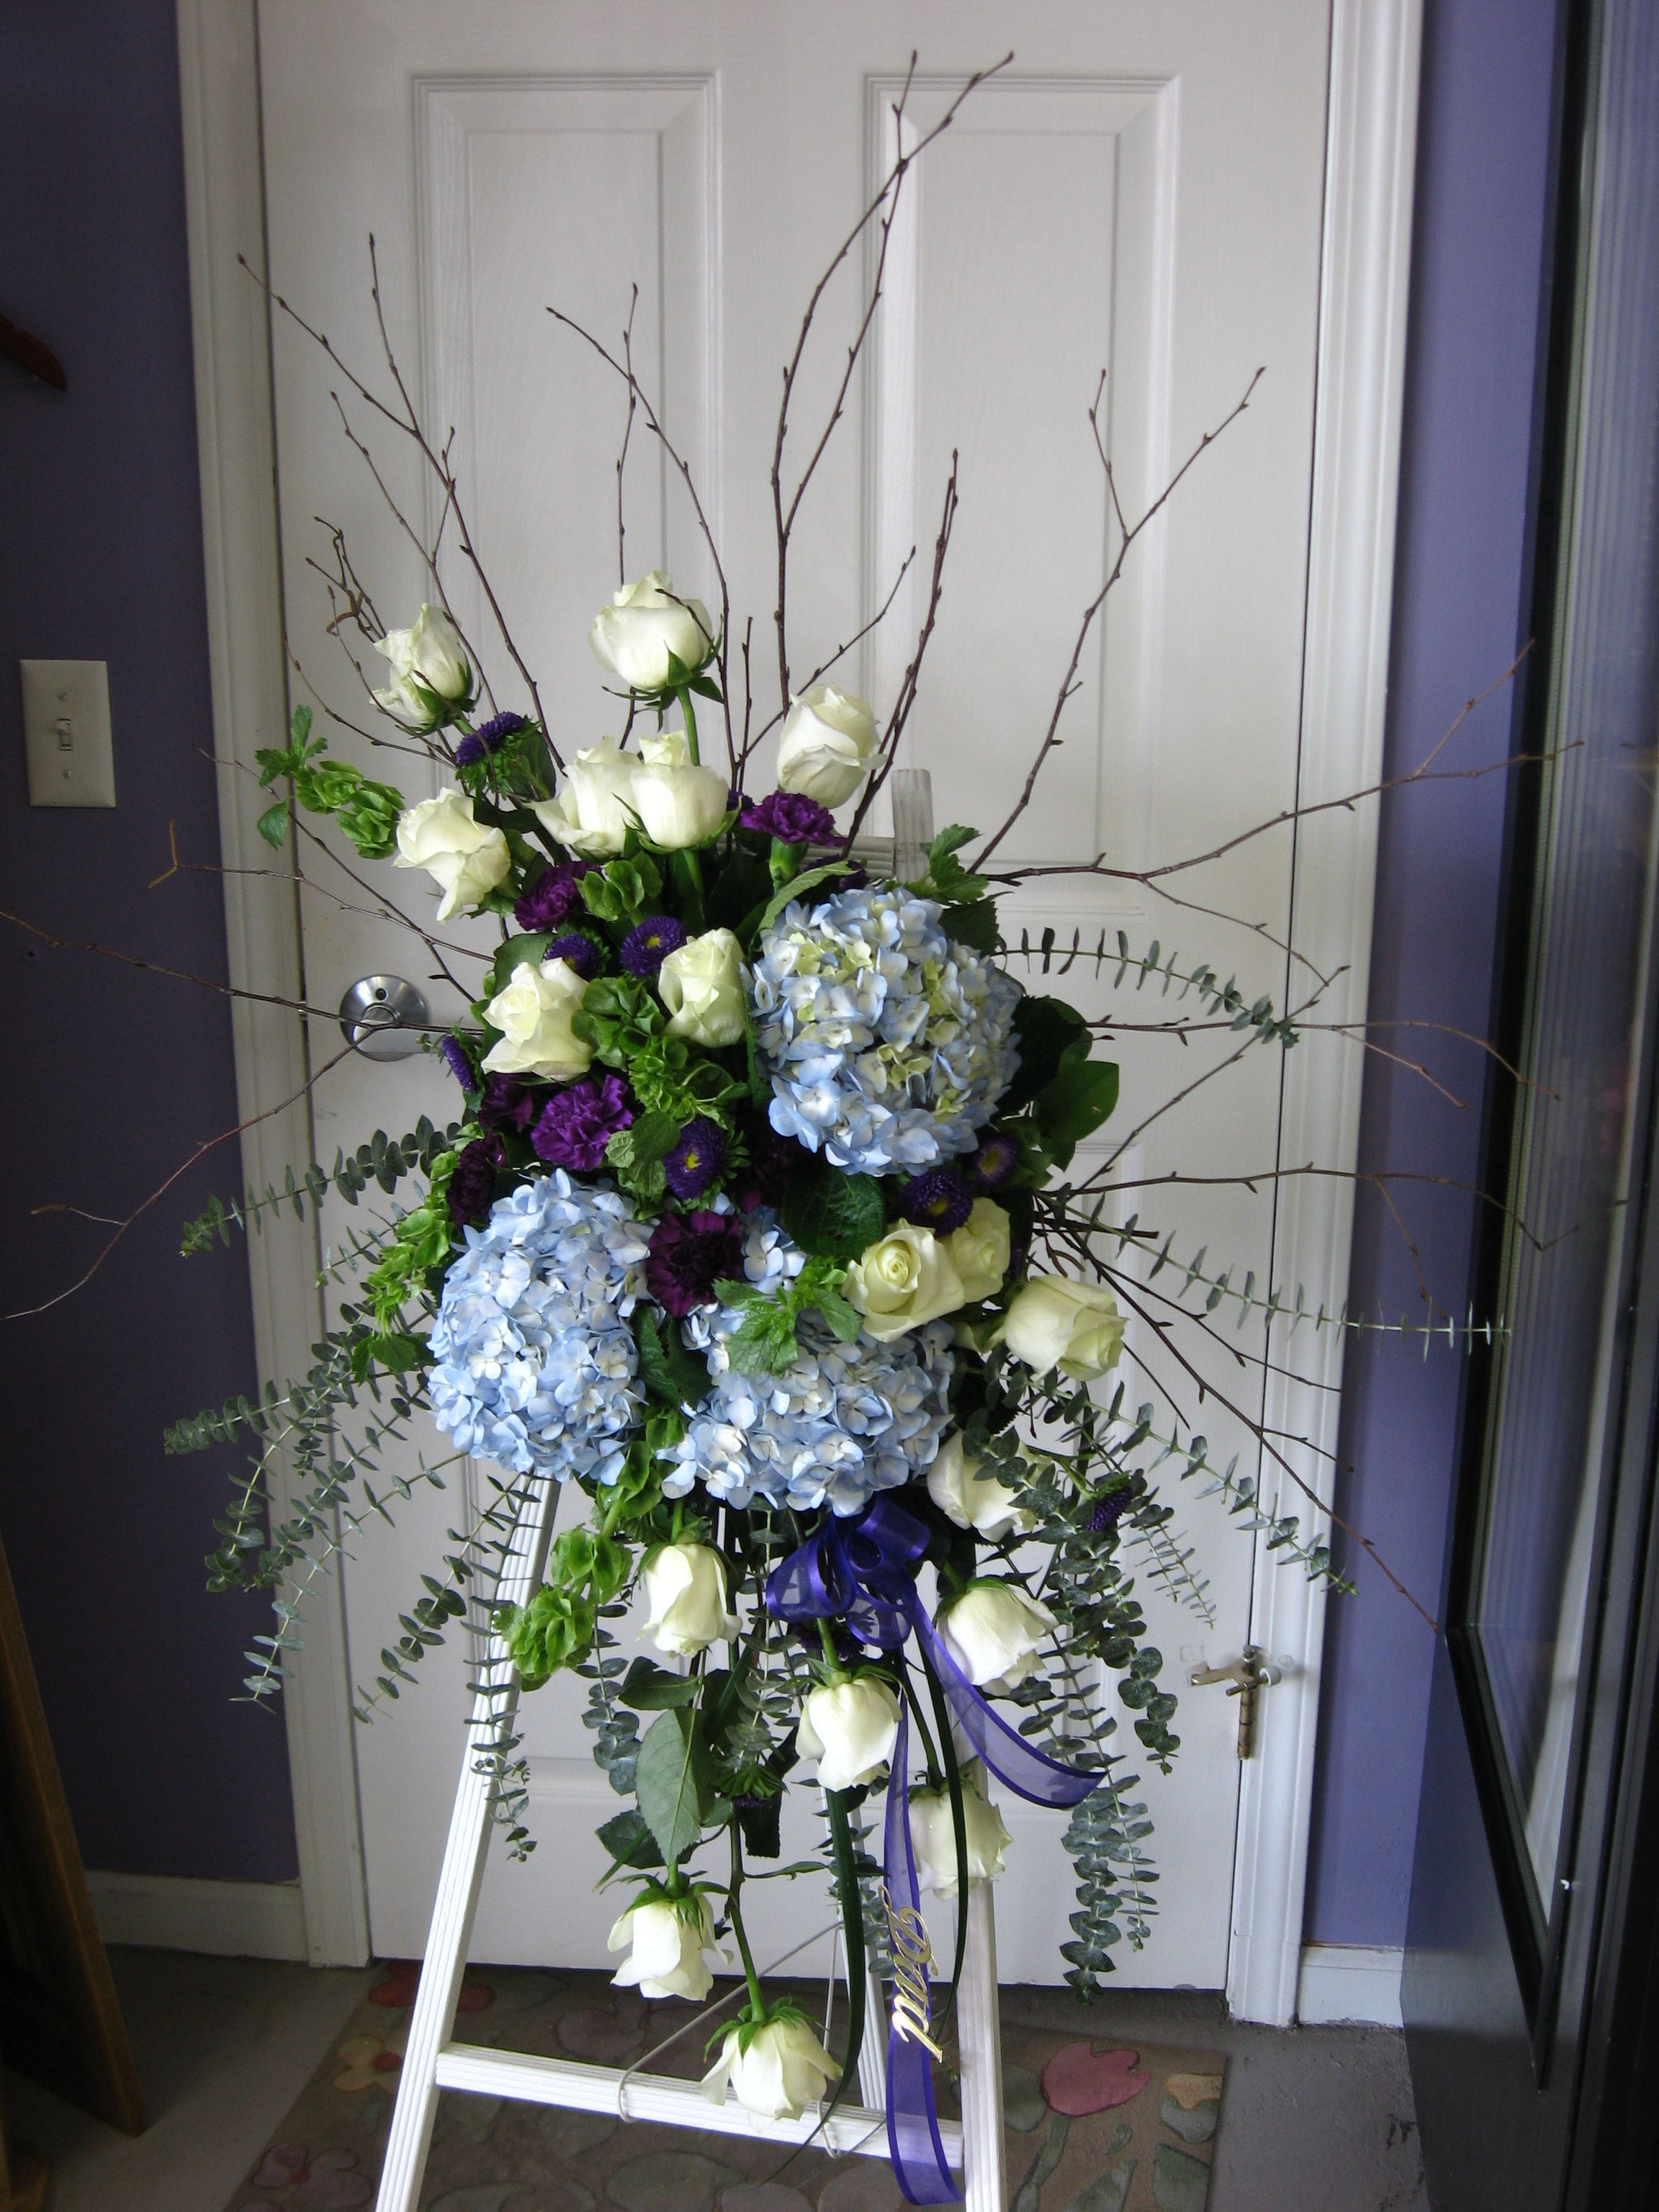 A beautiful sympathy spray by Amazing Petals love the cool colors